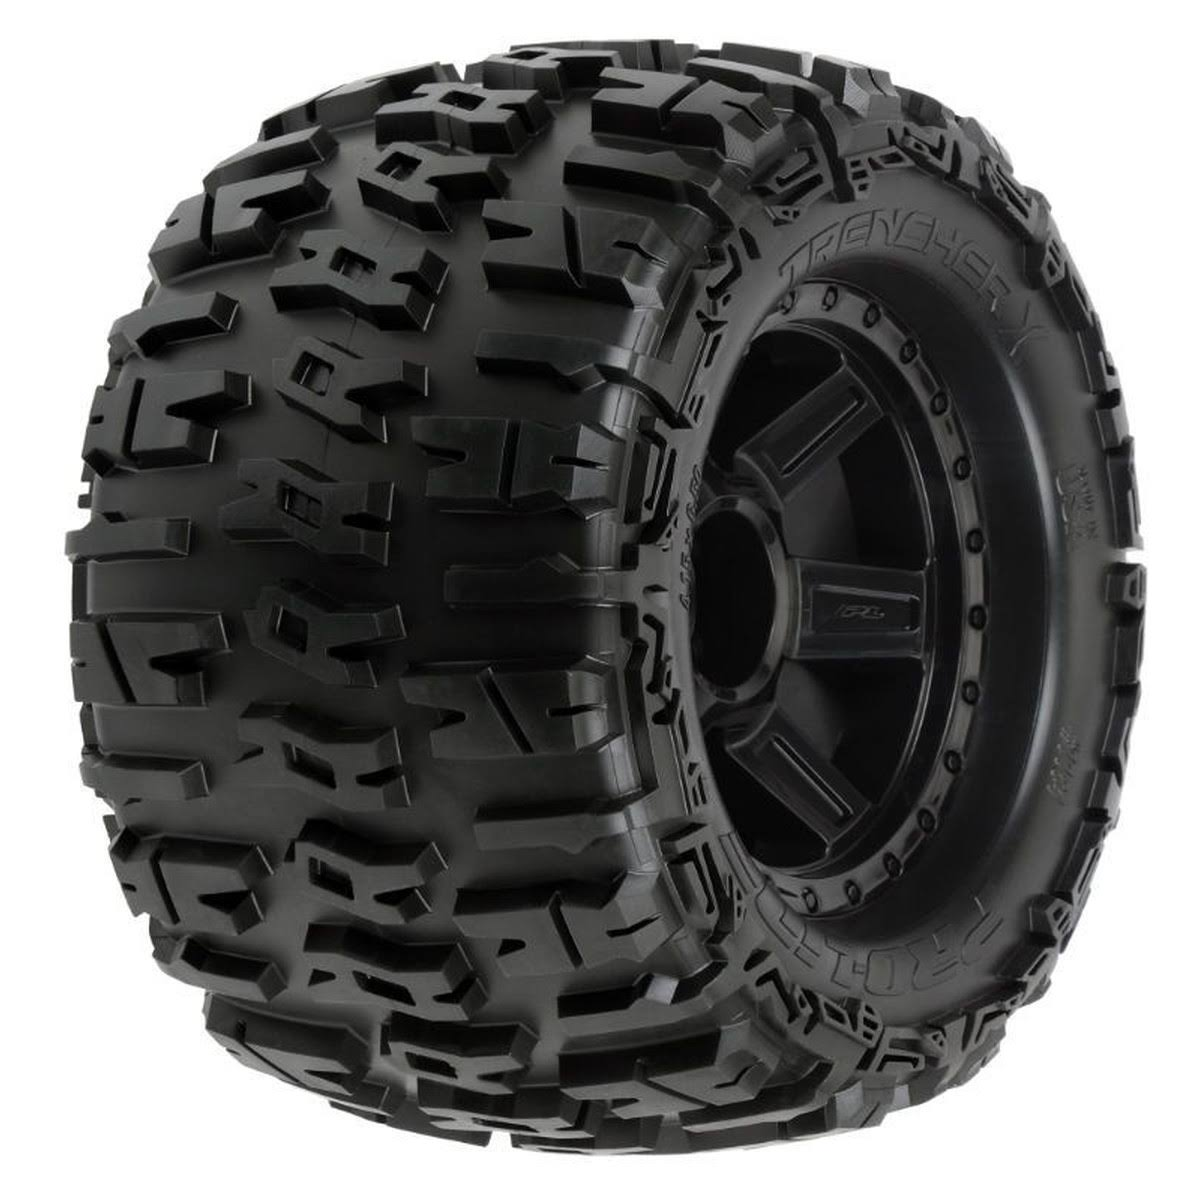 Proline 118411 Trencher 3.8 All Terrain Tire Mounted - Desperado Black Wheels